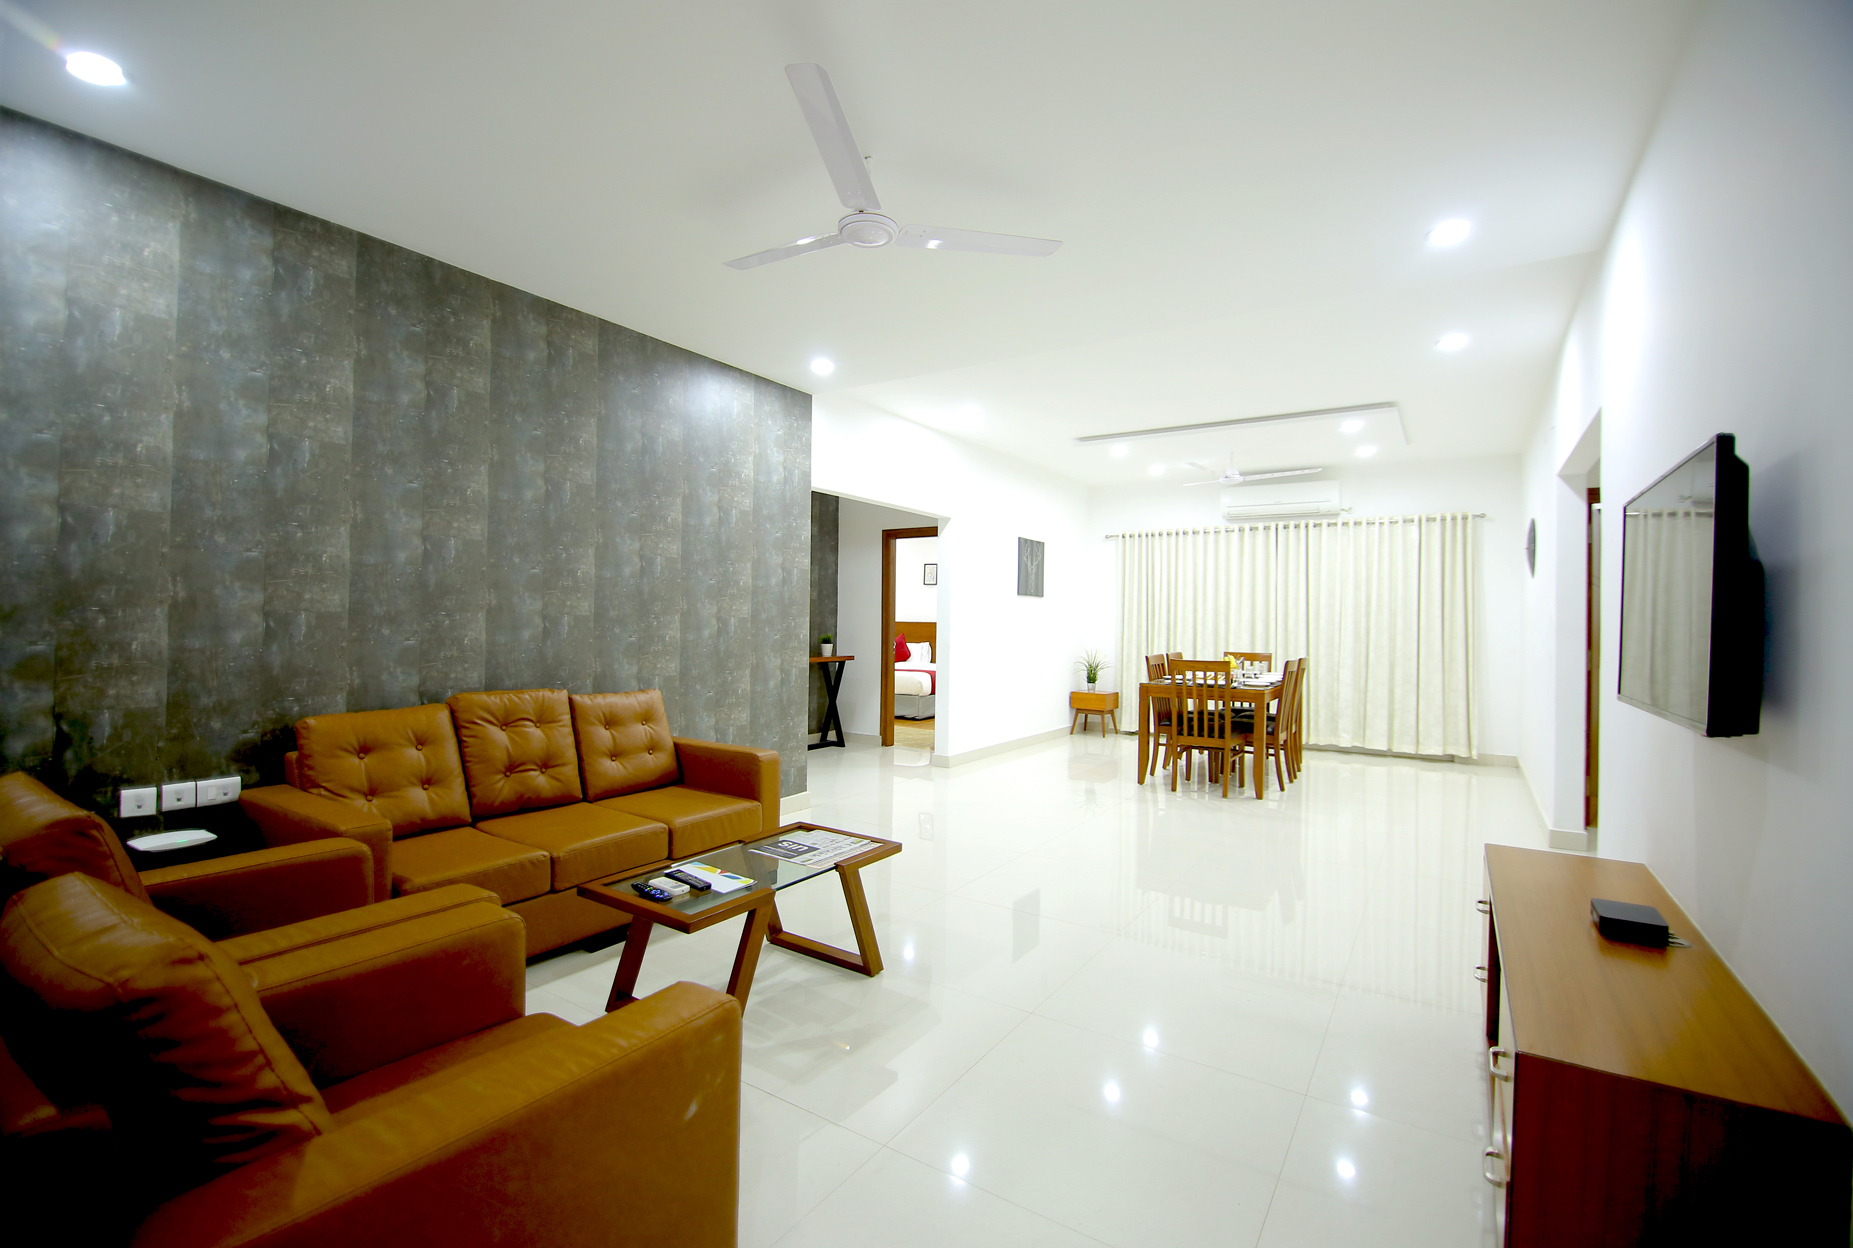 skyla-service-apartment-hyderabad-banjara-hills-bluefox-restaurant-3bhk4.jpg